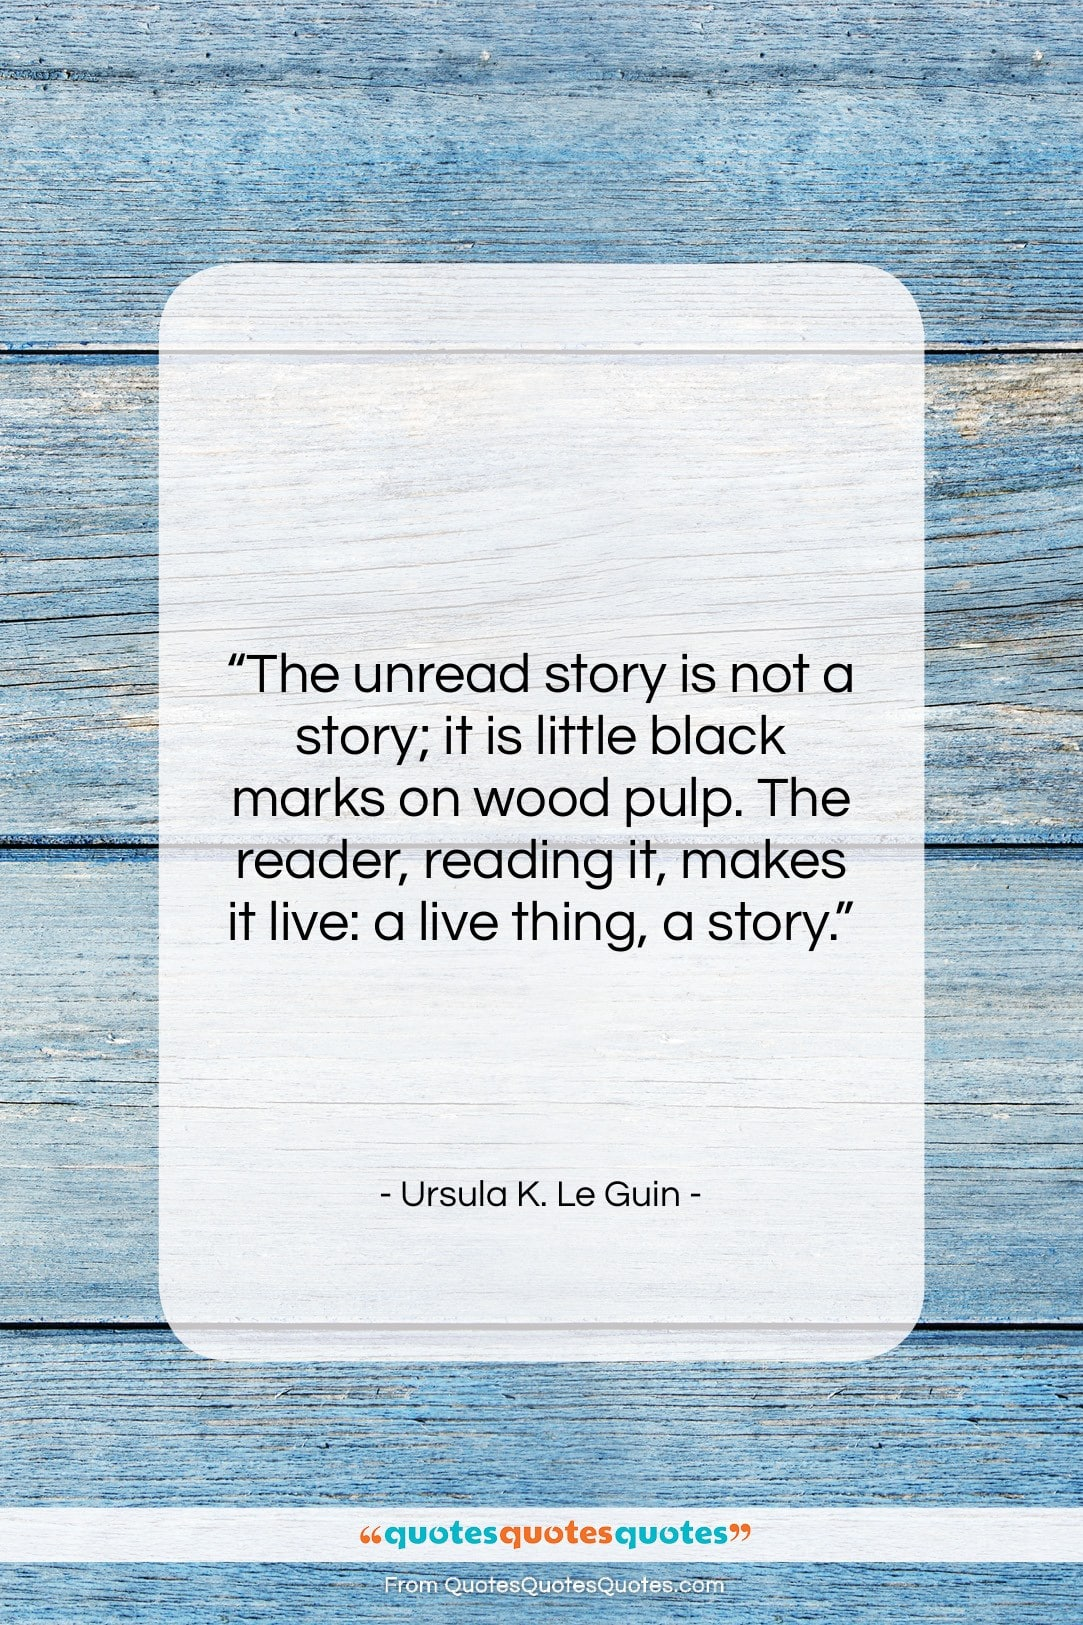 """Ursula K. Le Guin quote: """"The unread story is not a story;…""""- at QuotesQuotesQuotes.com"""